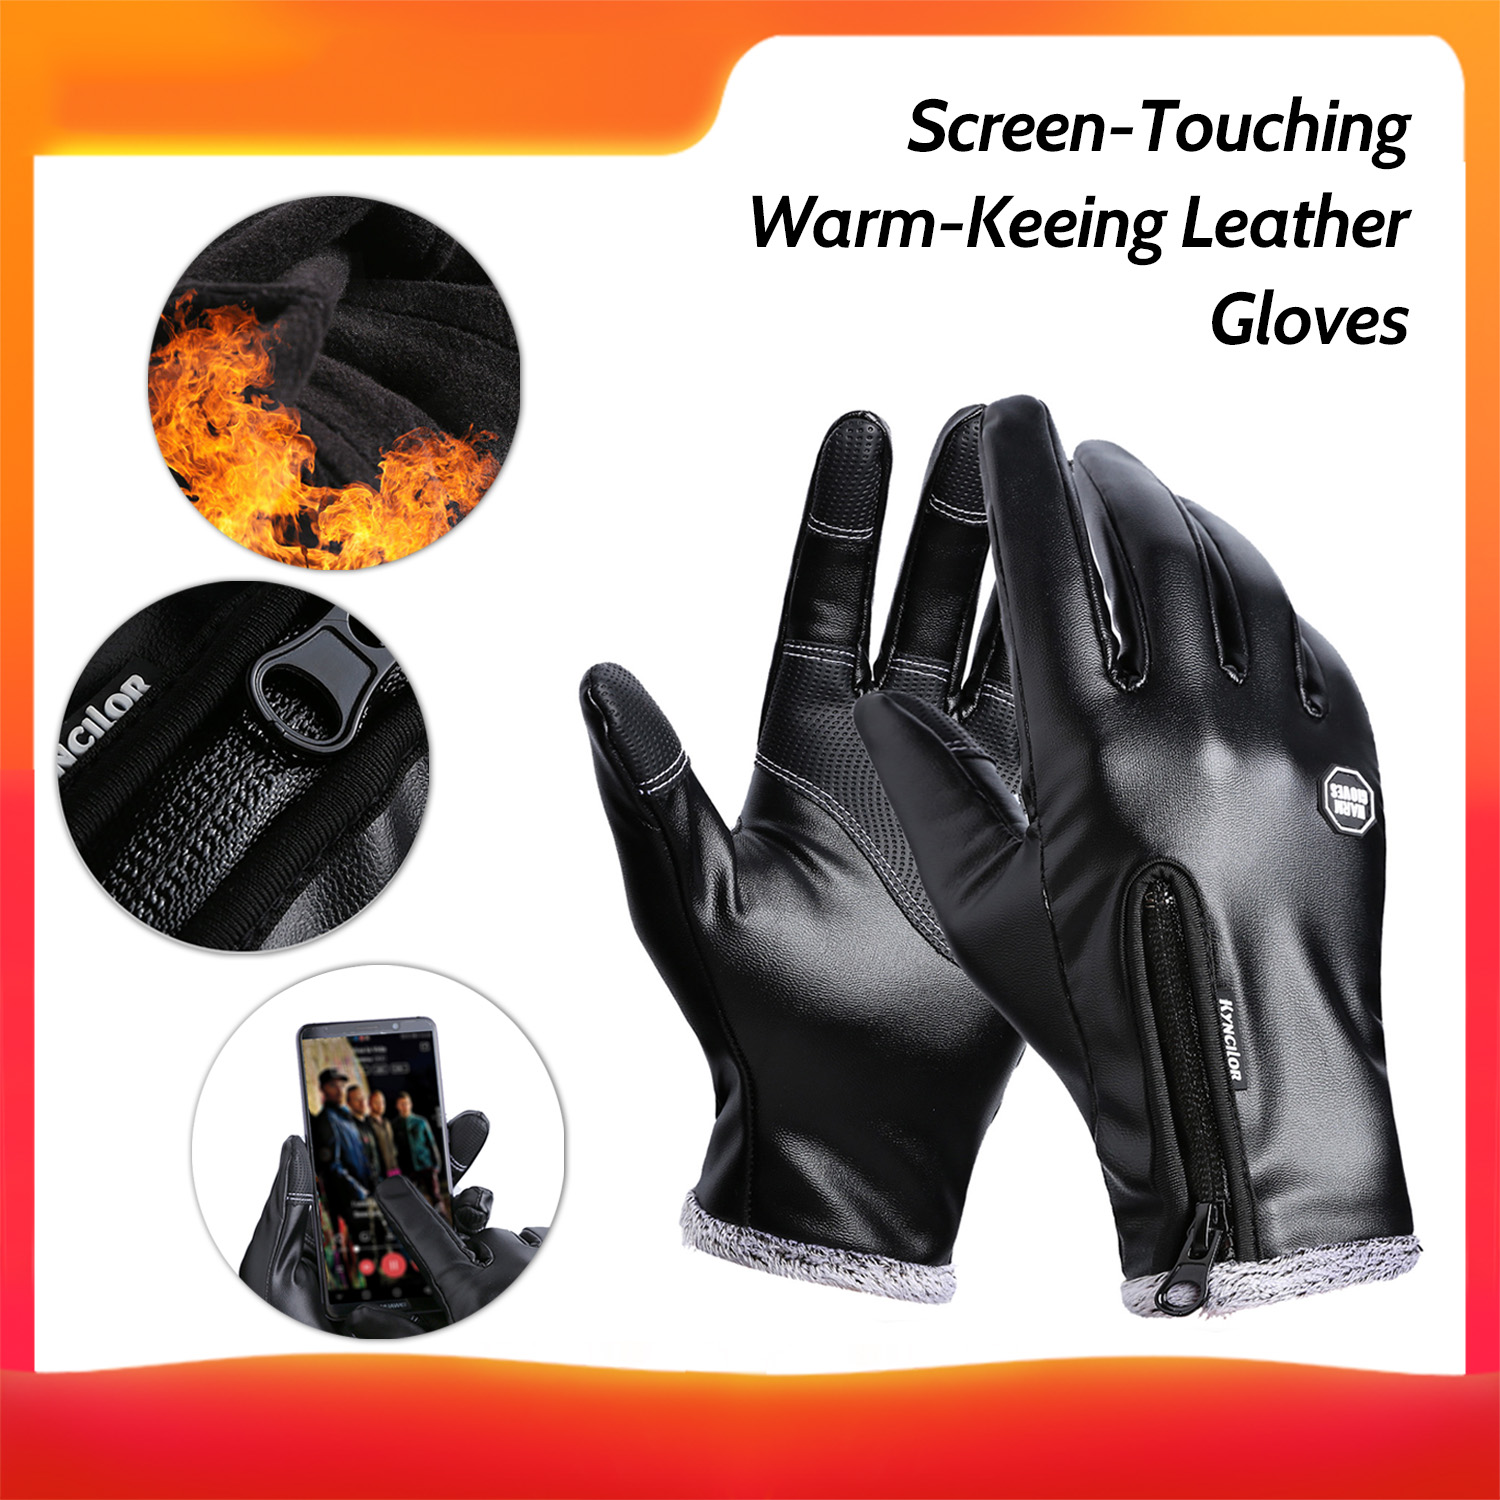 Kyncilor Winter Outdoor Sports Gloves Screen-Touching Leather Gloves Fashion Warm-Keeping Gloves Cold Weather